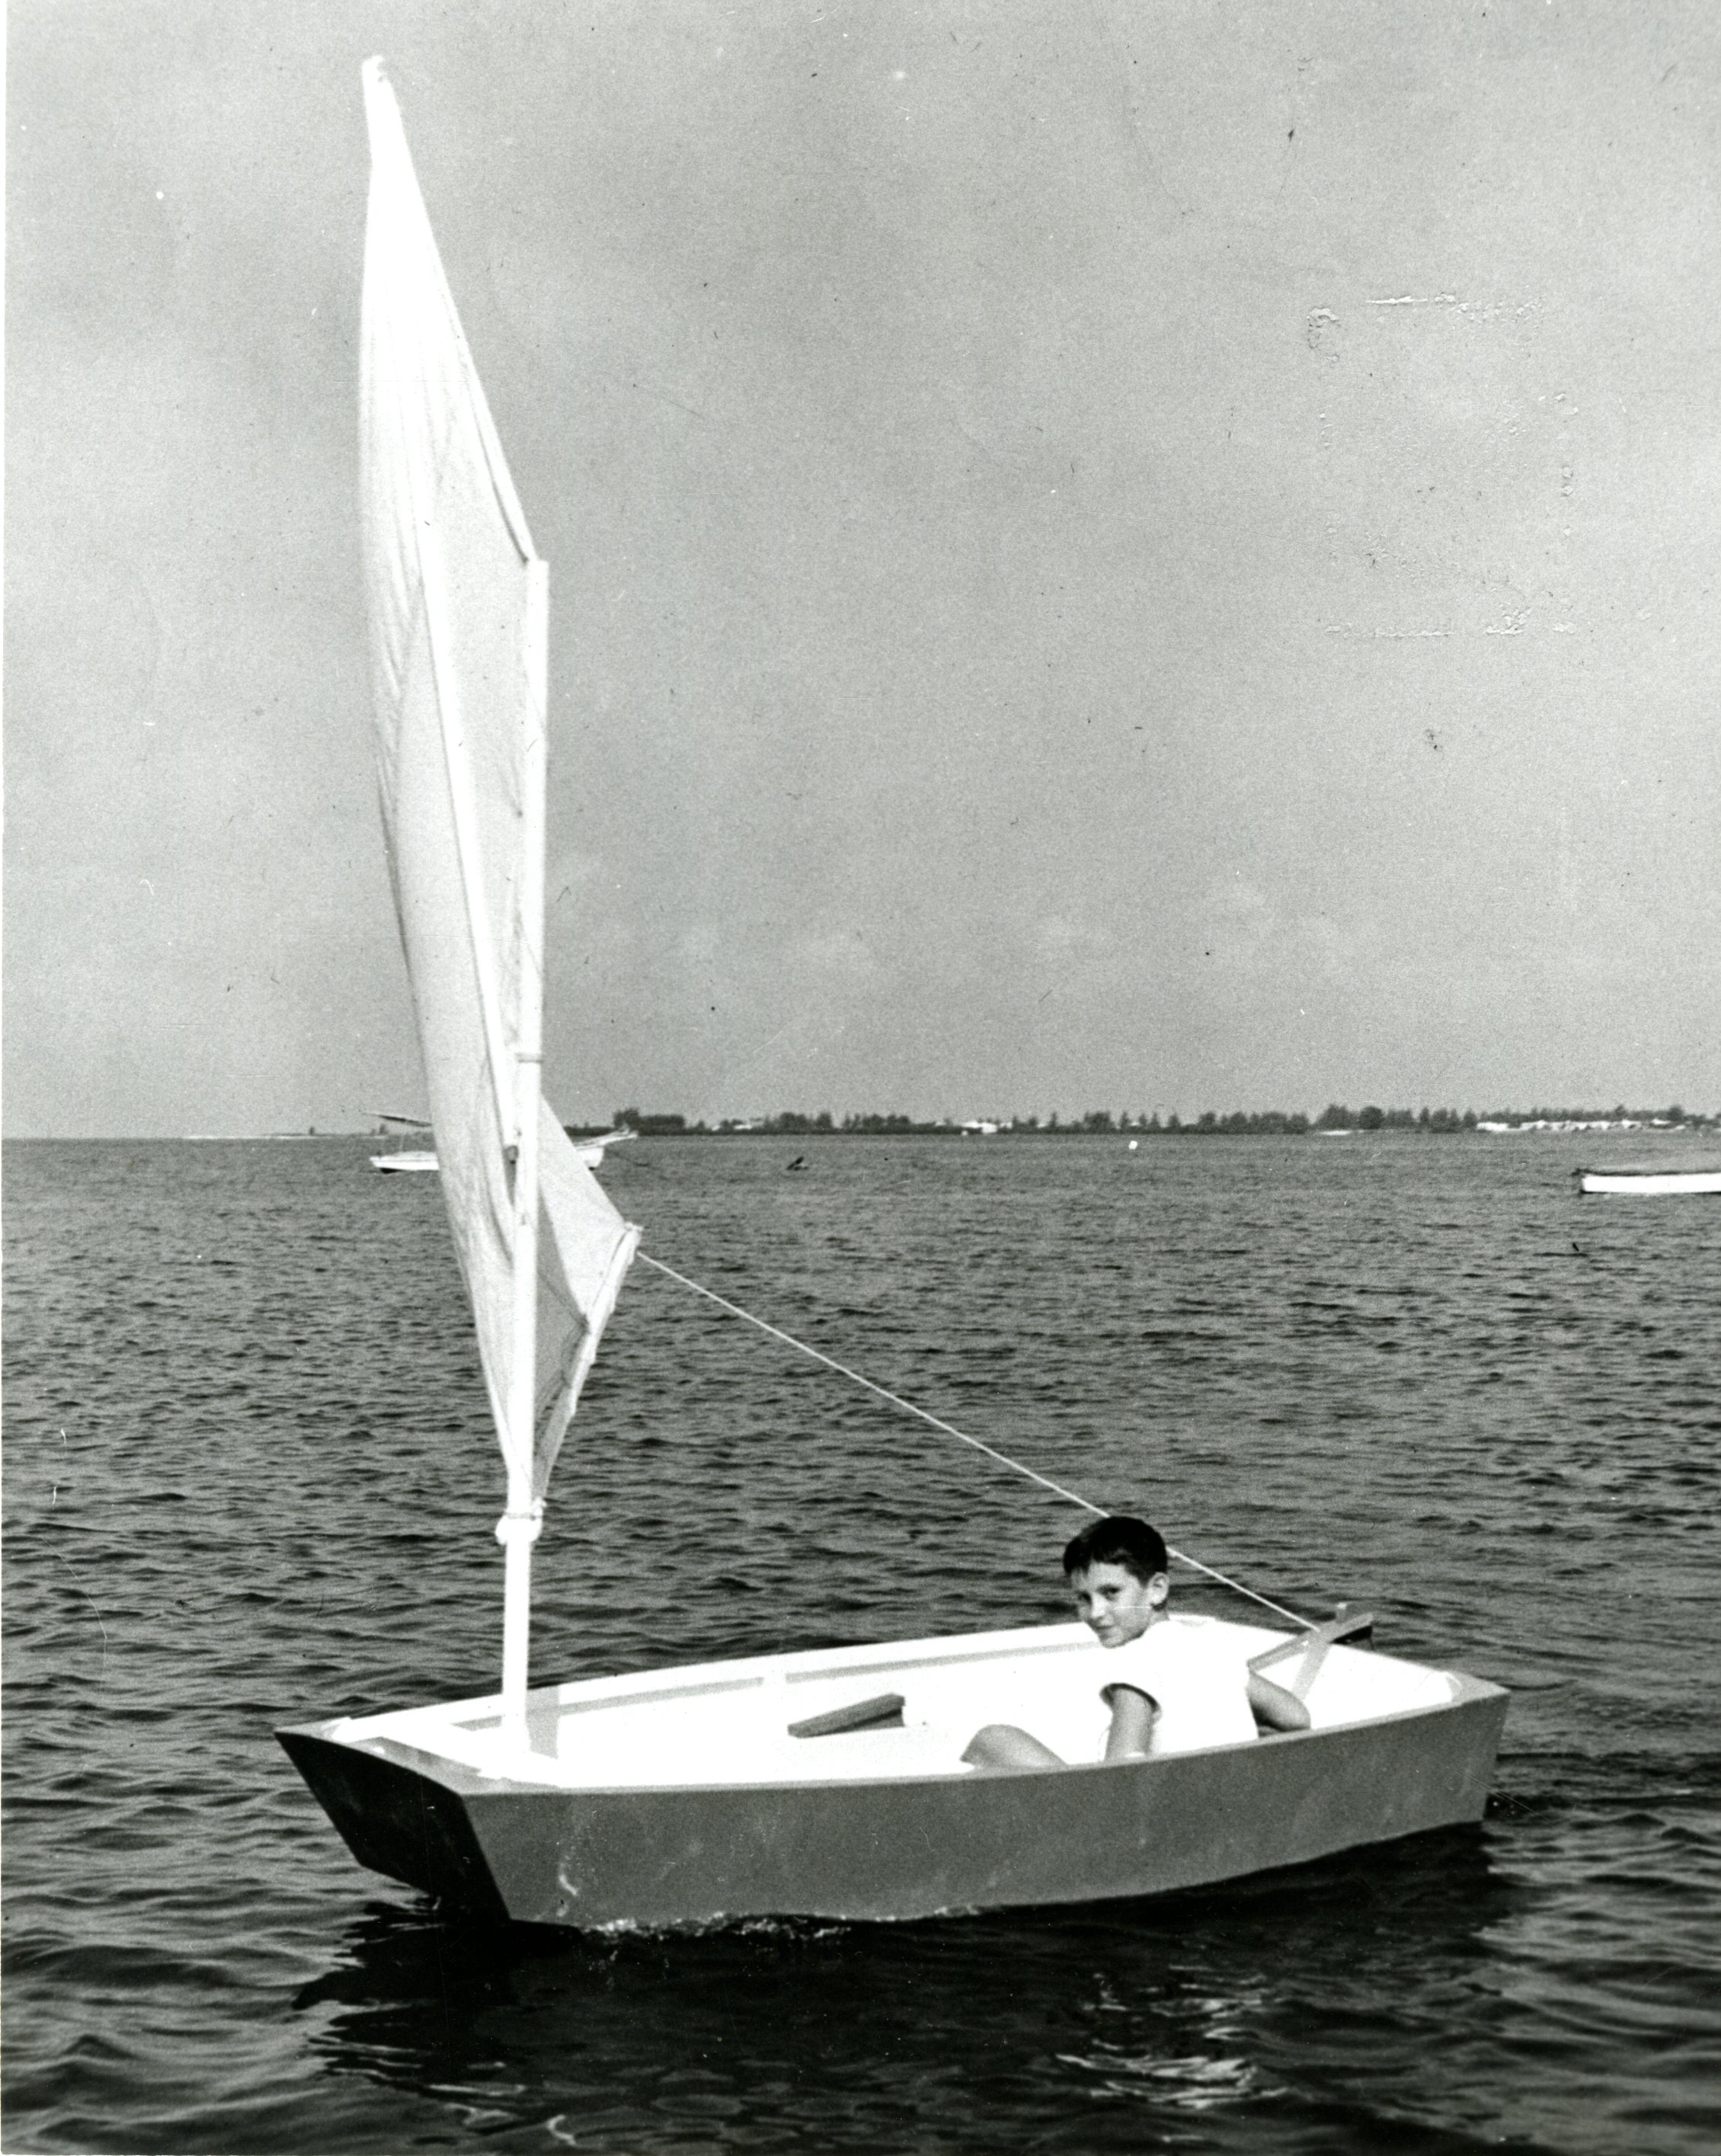 First Optimist Pram with skipper Clifford McKay Jr., Clearwater, Florida, circa 1948.